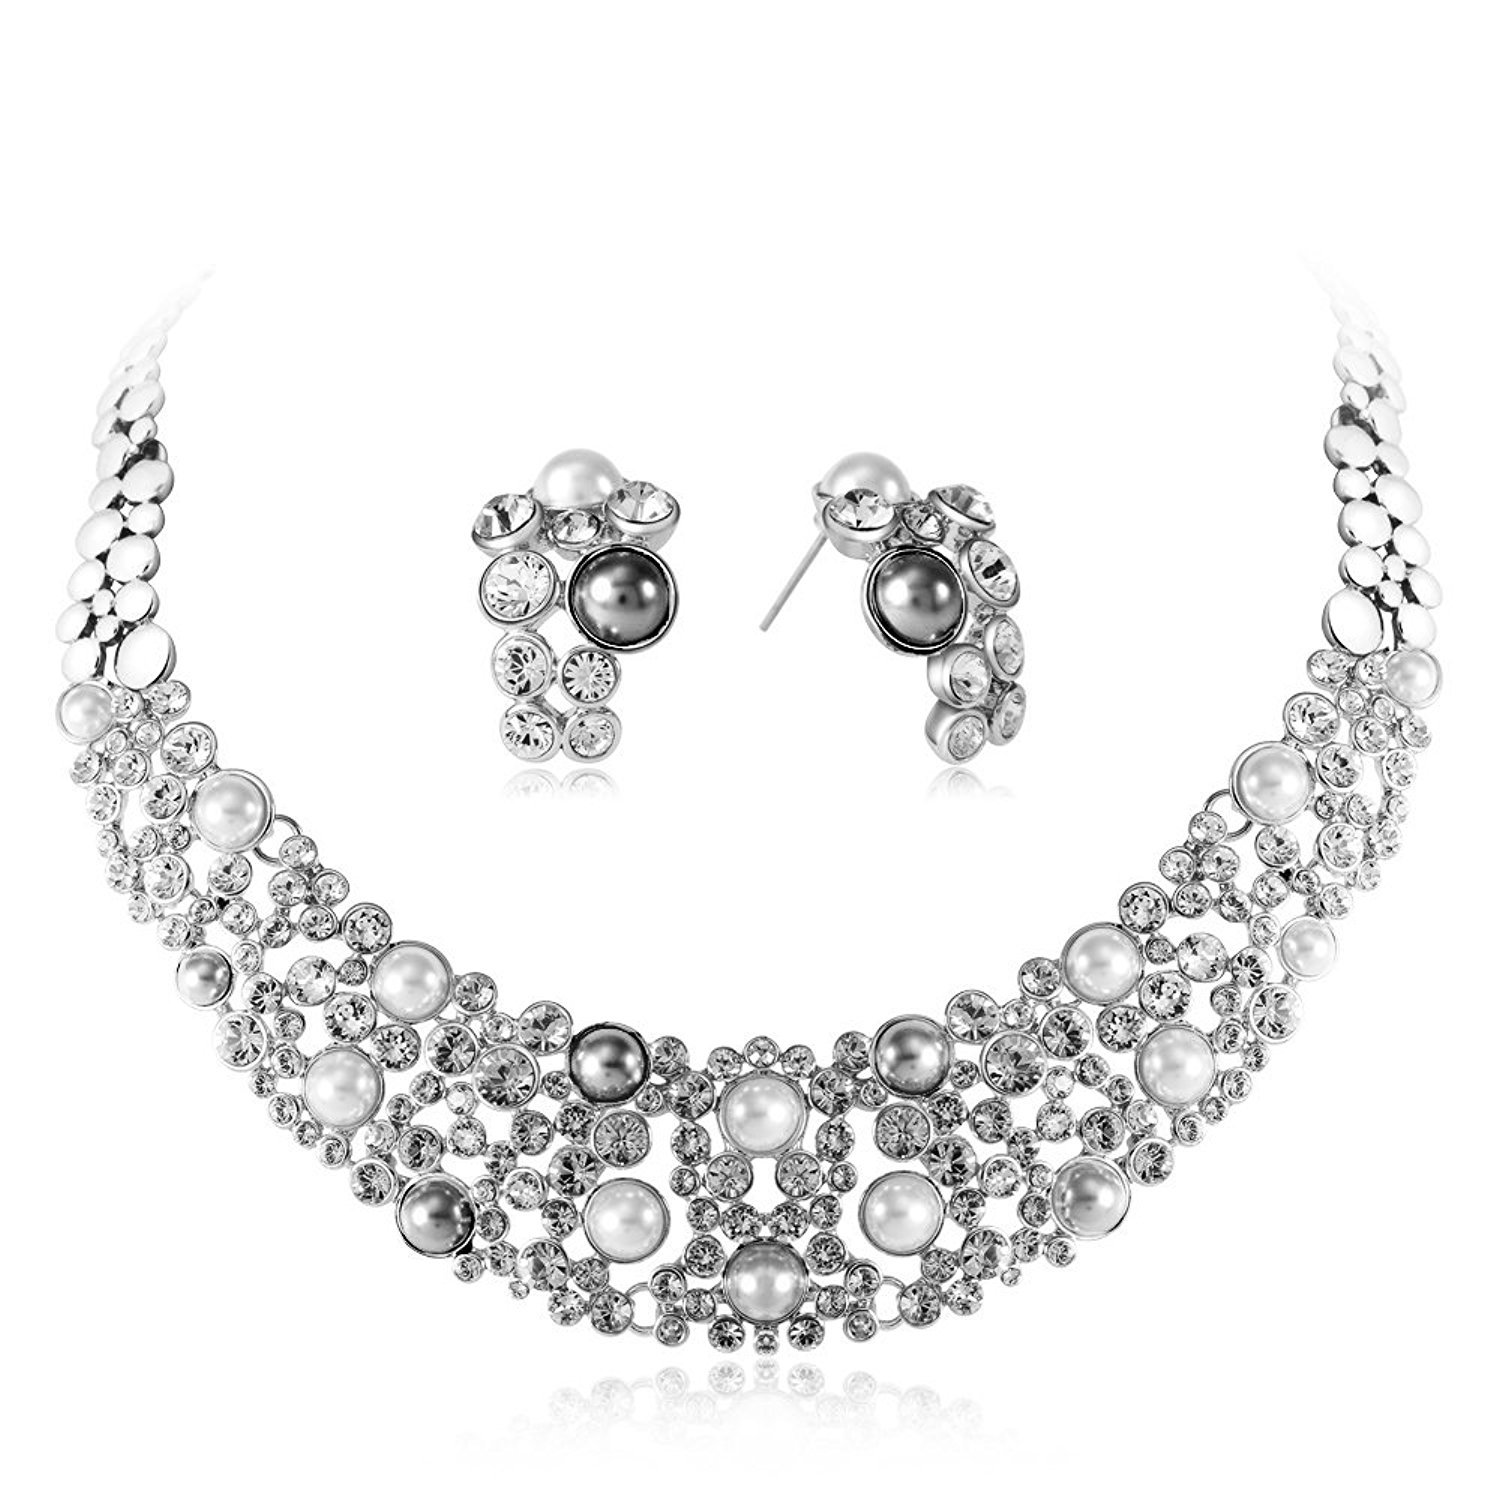 IUHA Cubic Zirconia Necklance and Earrings Luxury Jewelry Sets Wedding Prevent allergies Women Gifts by IUHA